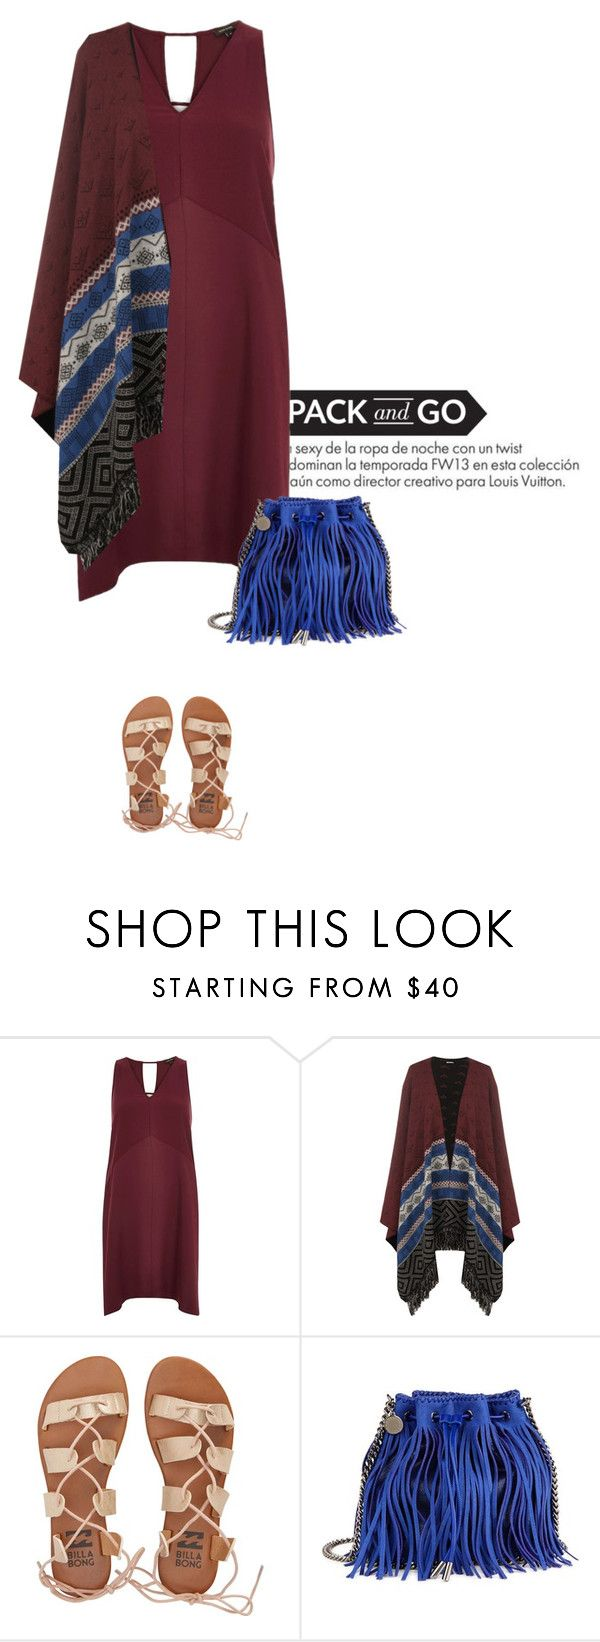 """""""Mexico City #2"""" by anja-173 ❤ liked on Polyvore featuring Louis Vuitton, River Island, WearAll, Billabong, STELLA McCARTNEY and Packandgo"""